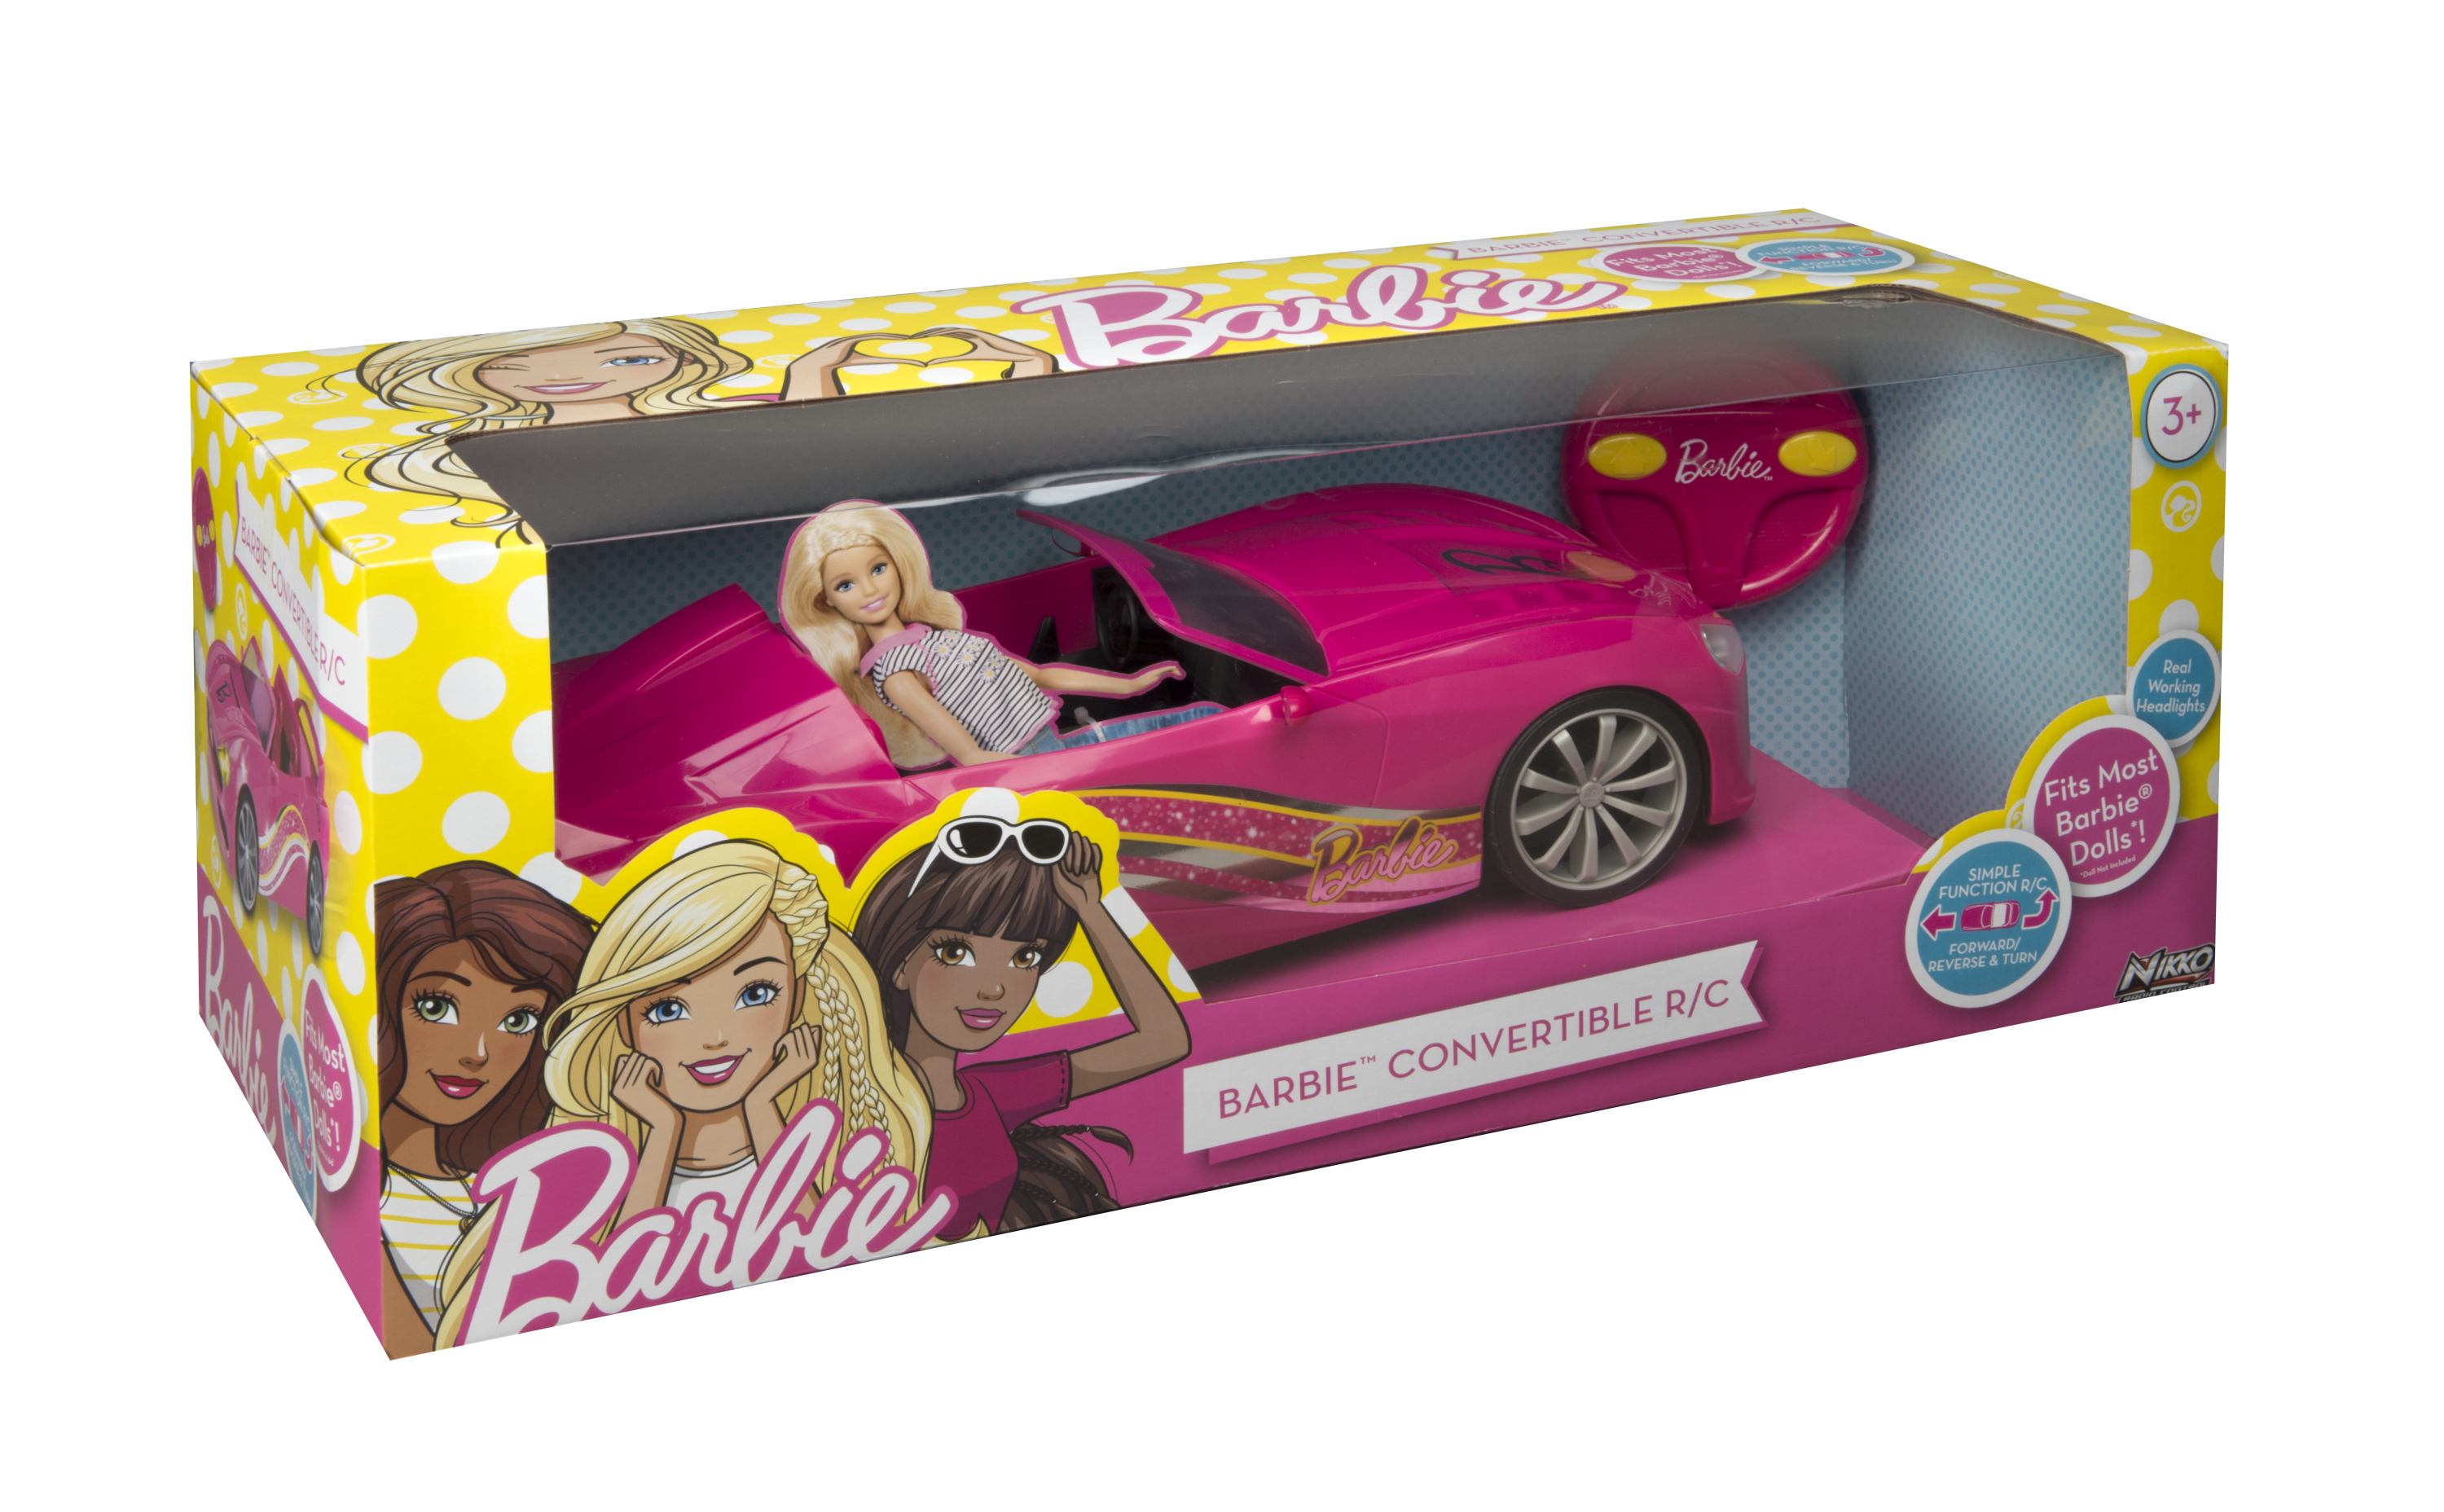 Barbie Convertible Remote Control Car by Toy State International Limited